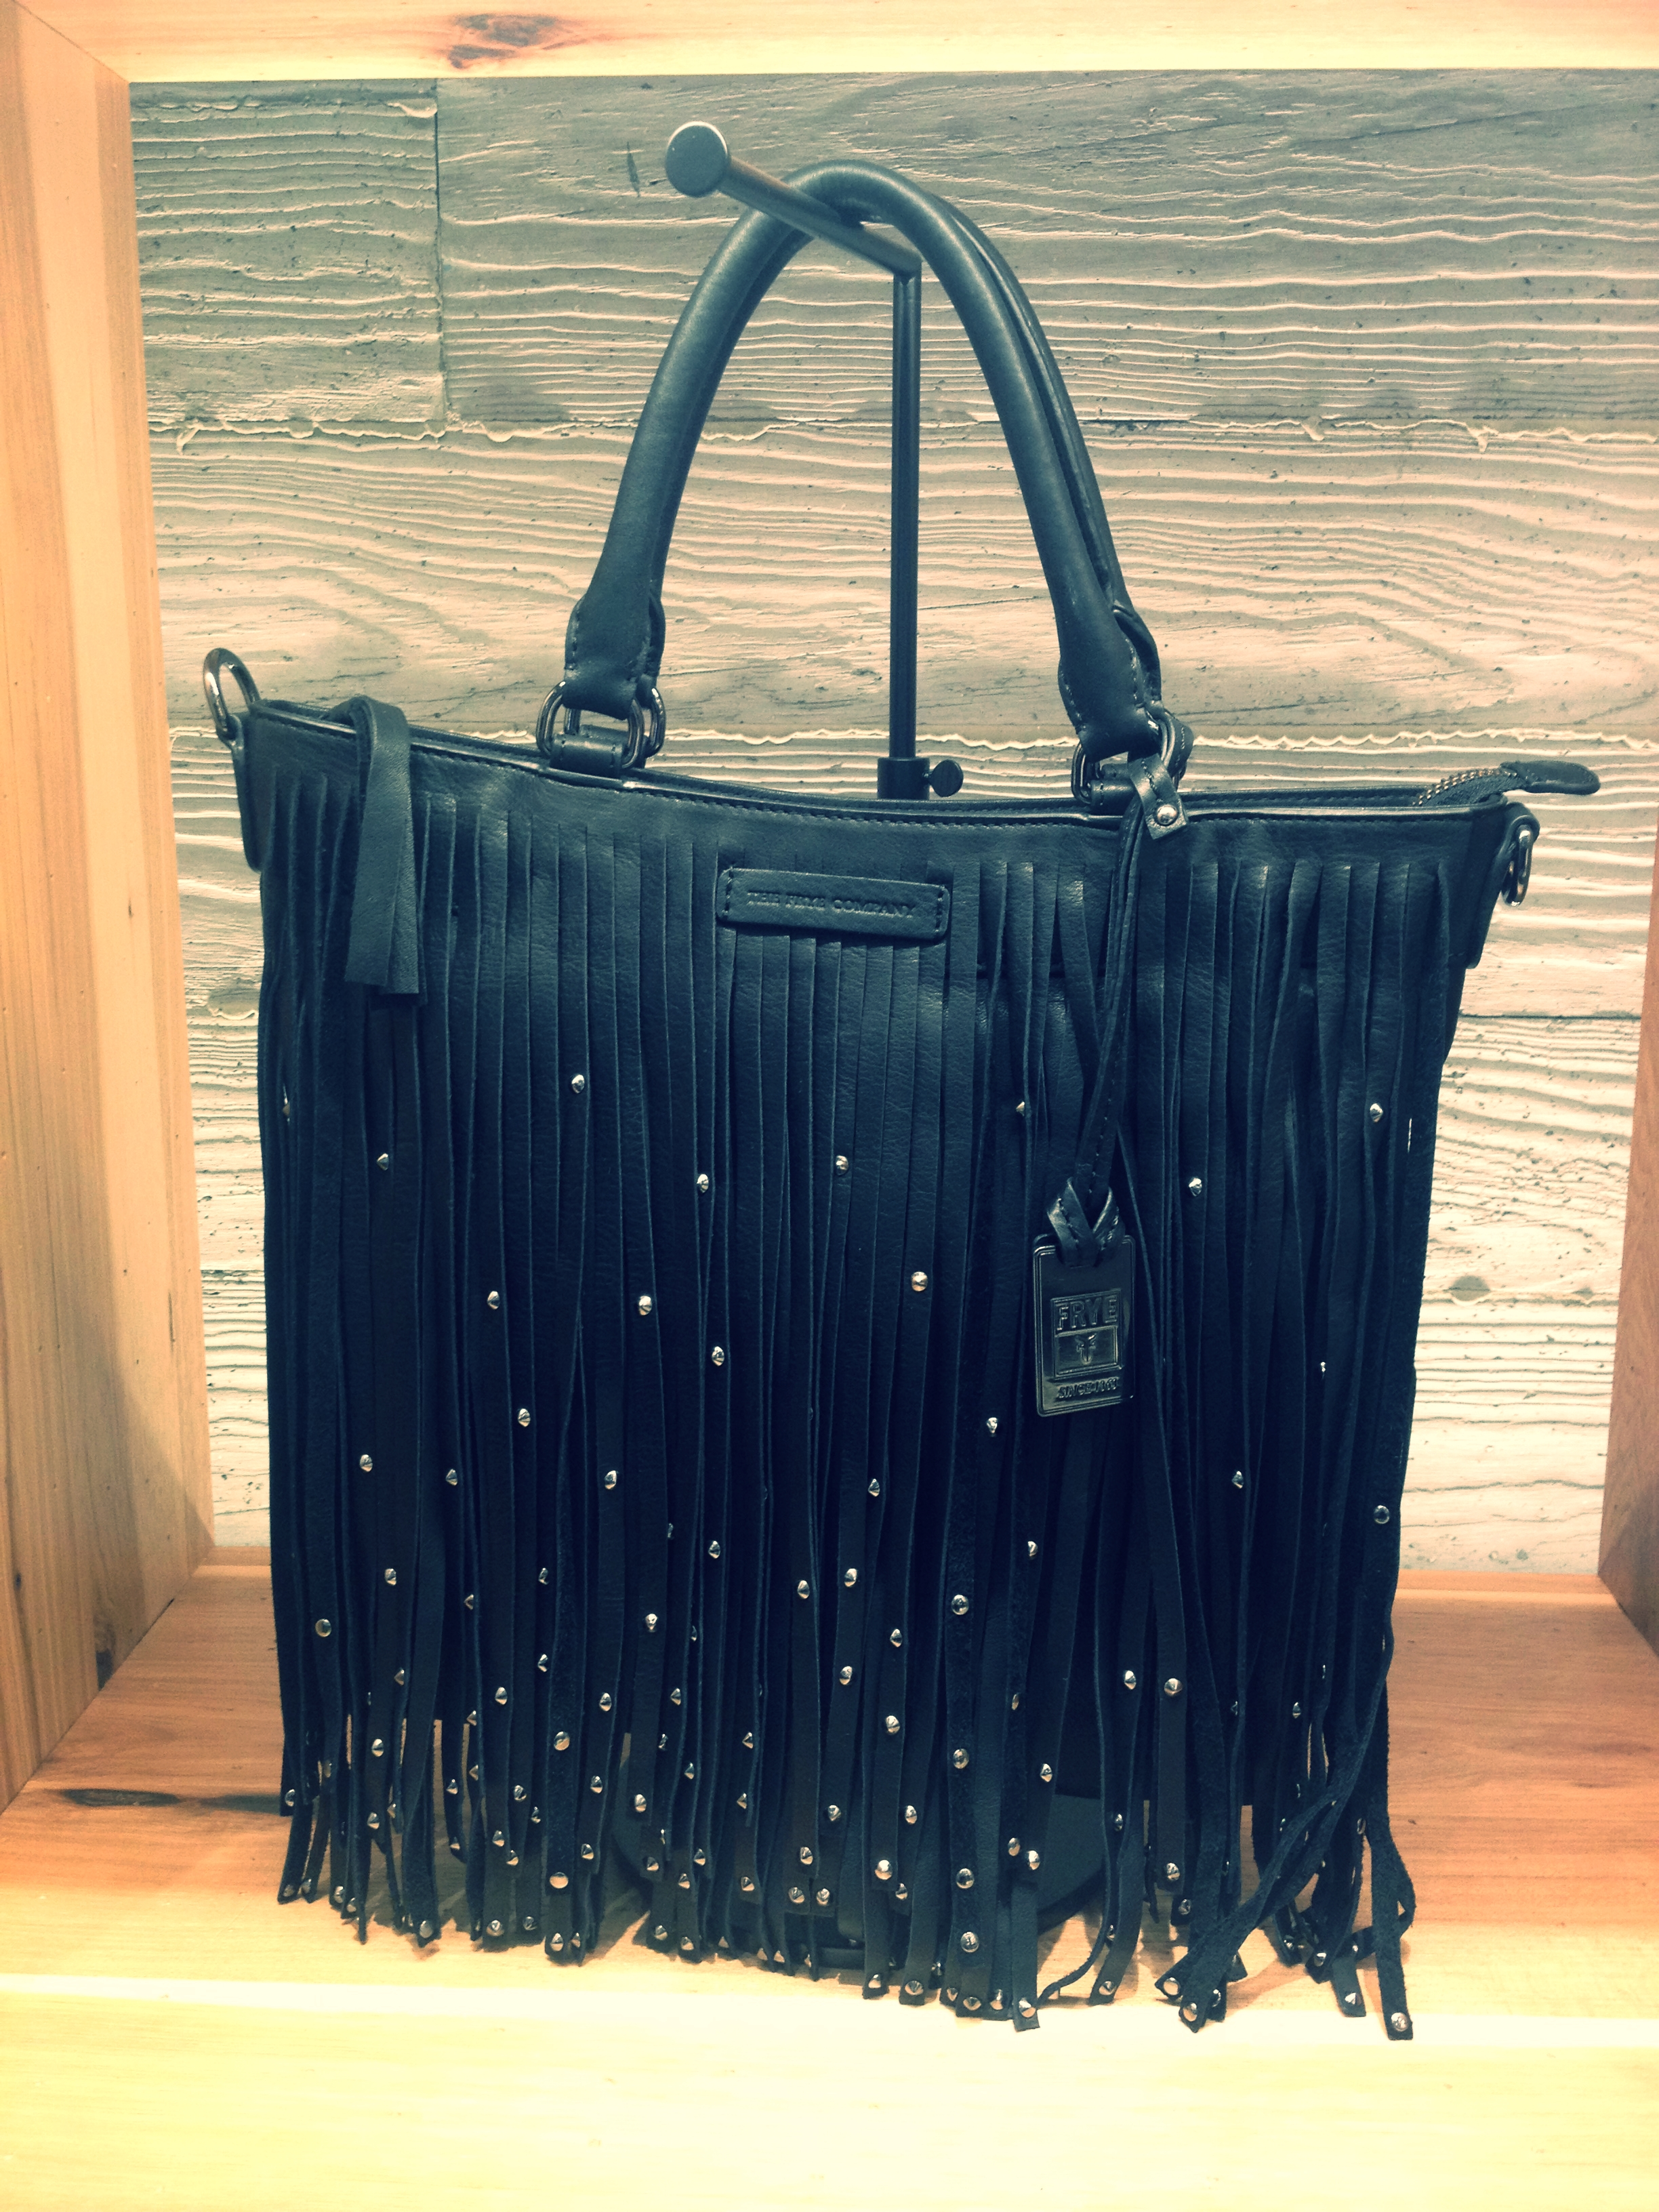 Ladies, you'll LOVE the fringe on bags and shoes!